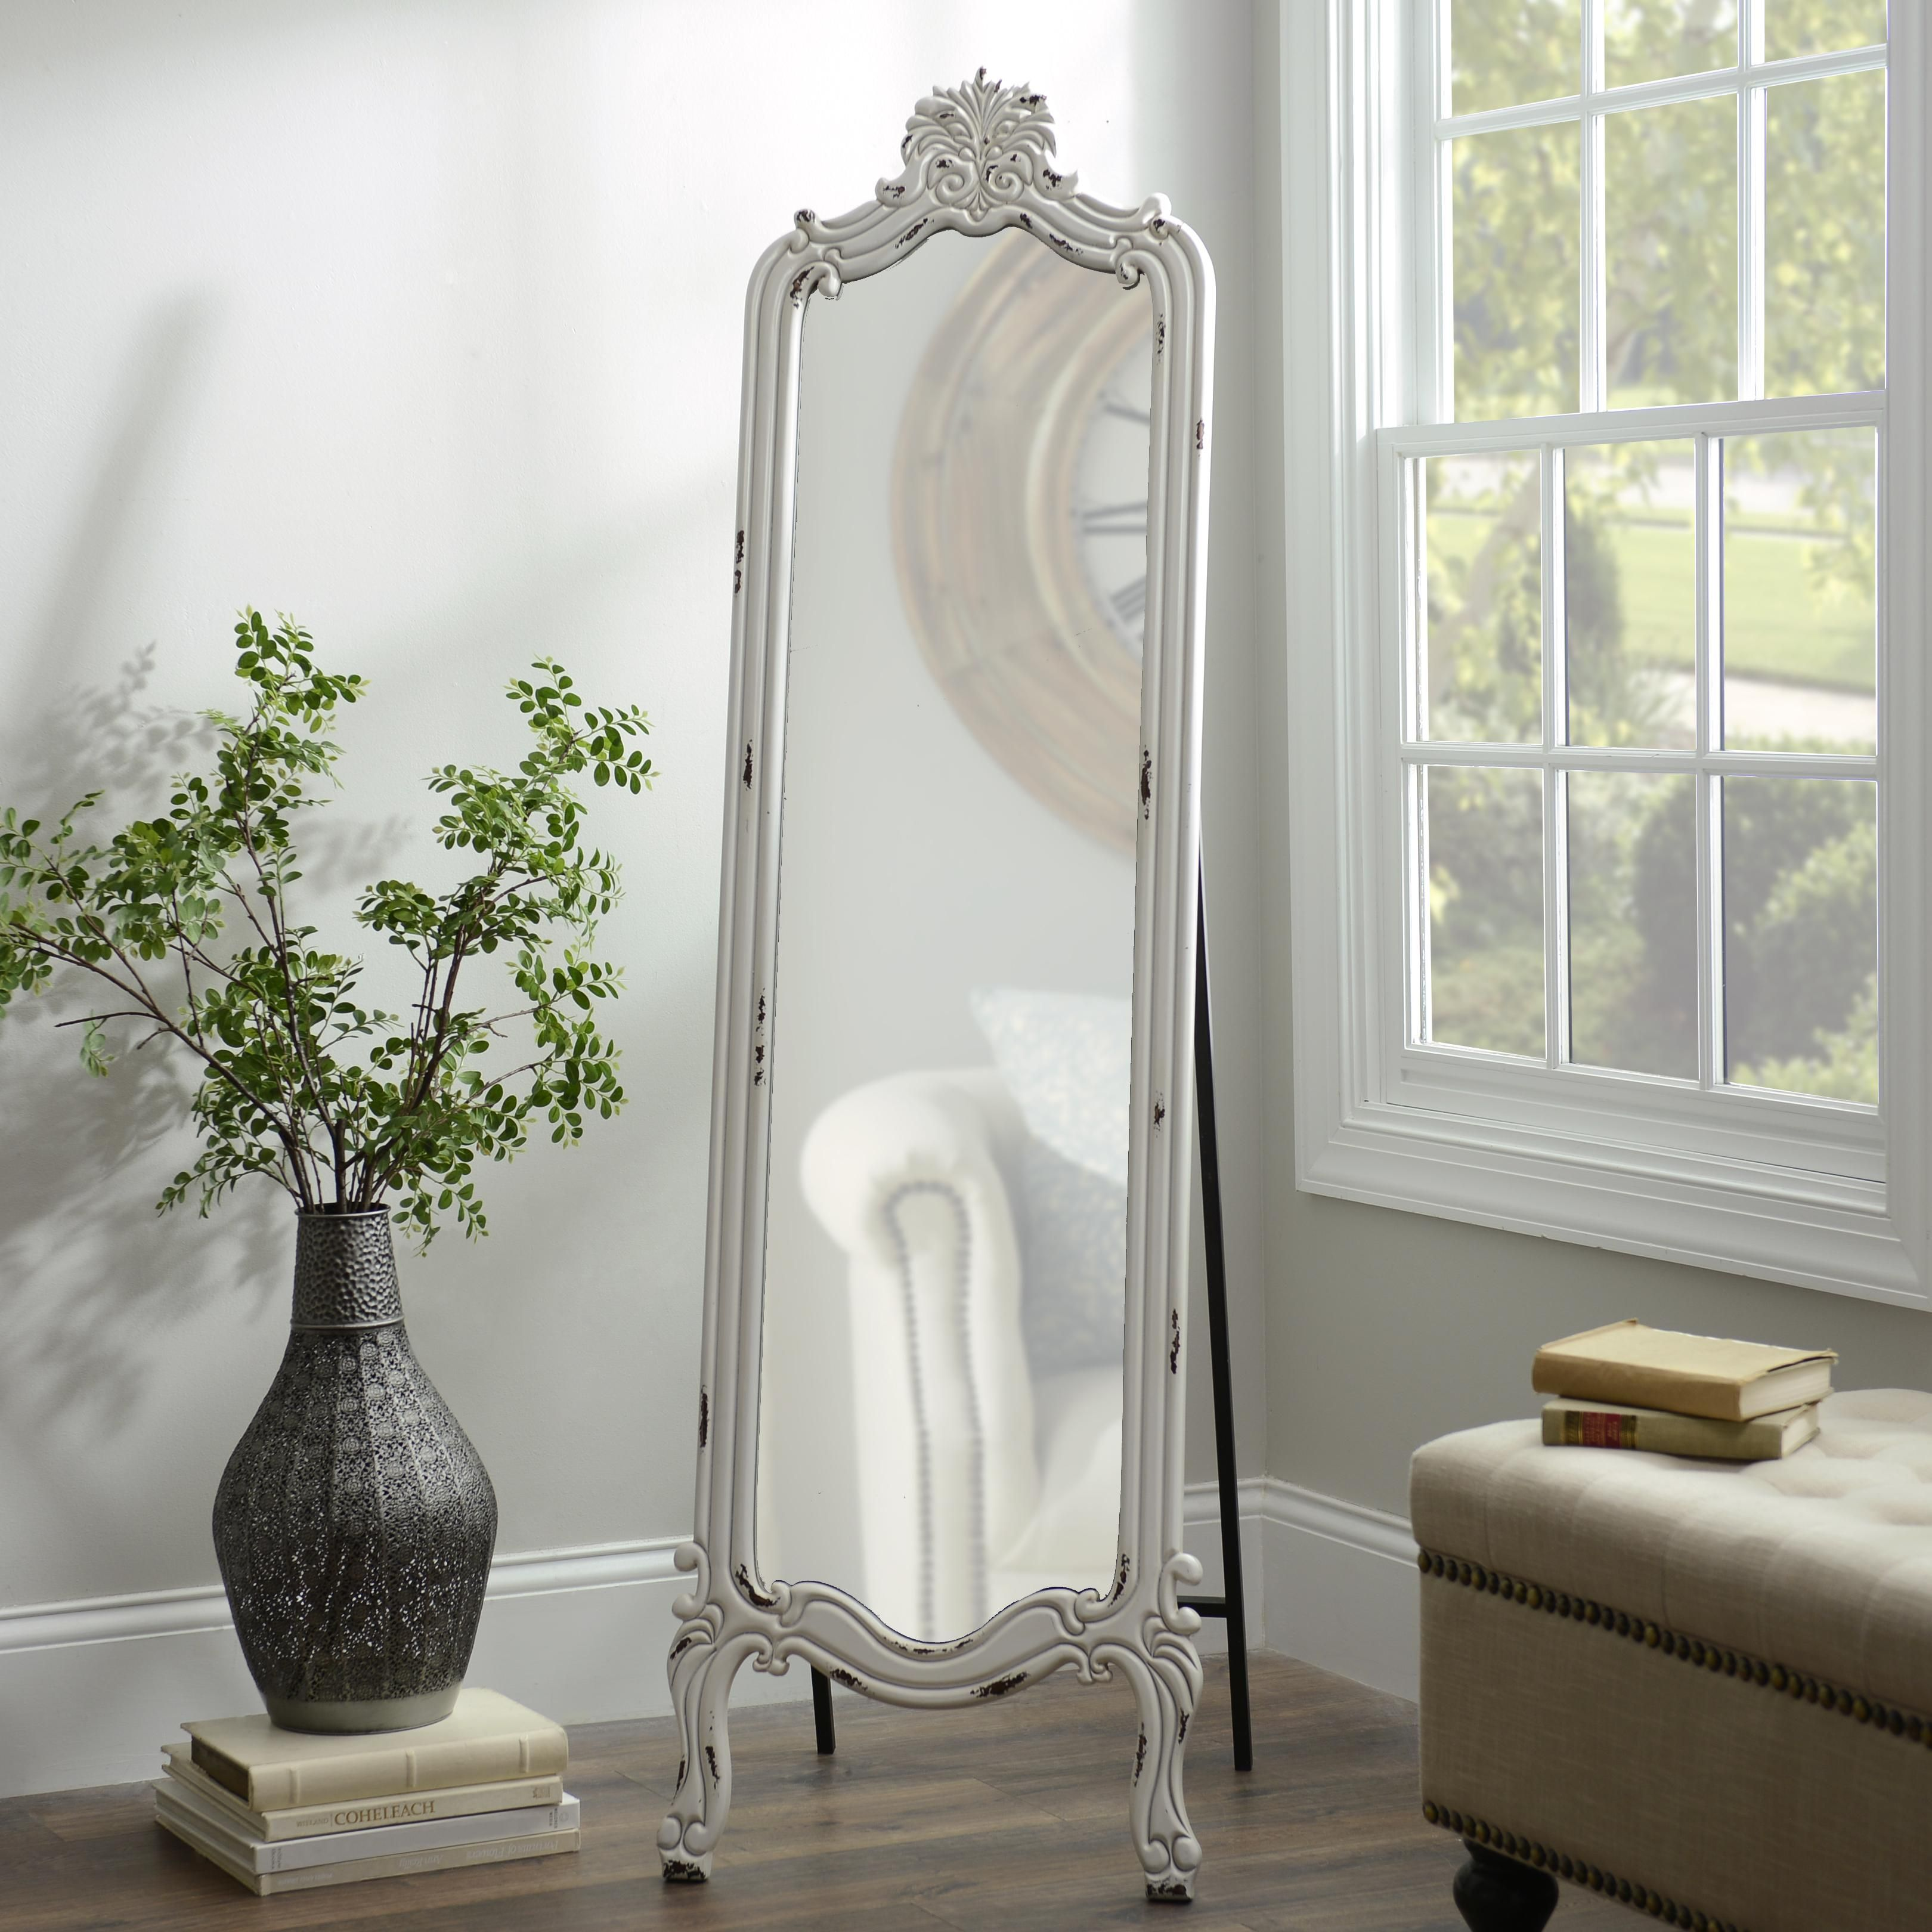 Distressed White Morgan Cheval Mirror in 2020 | Cheval ... on Floor Mirrors Decorative Kirklands id=14845